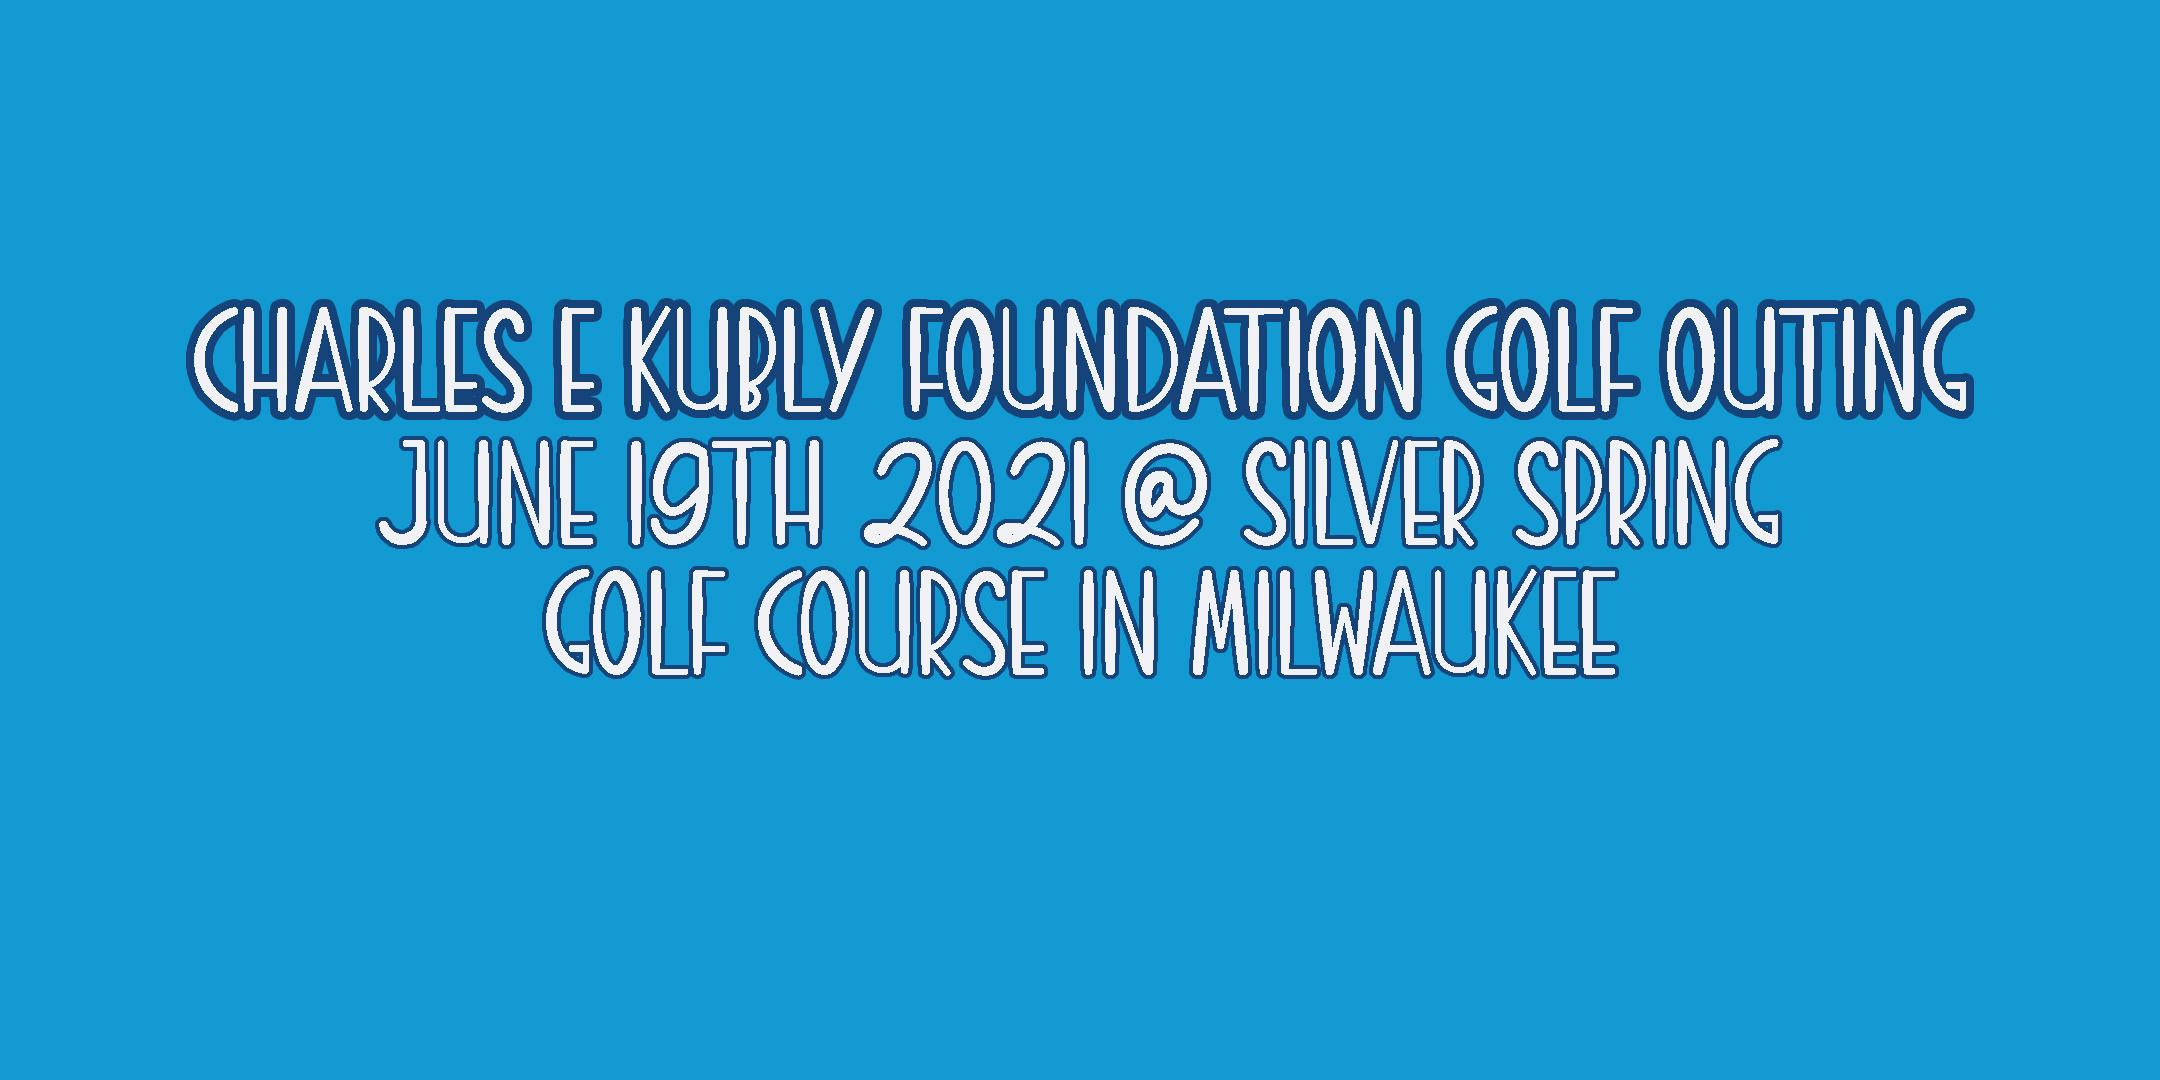 Charles E Kubly Foundation Golf Outing